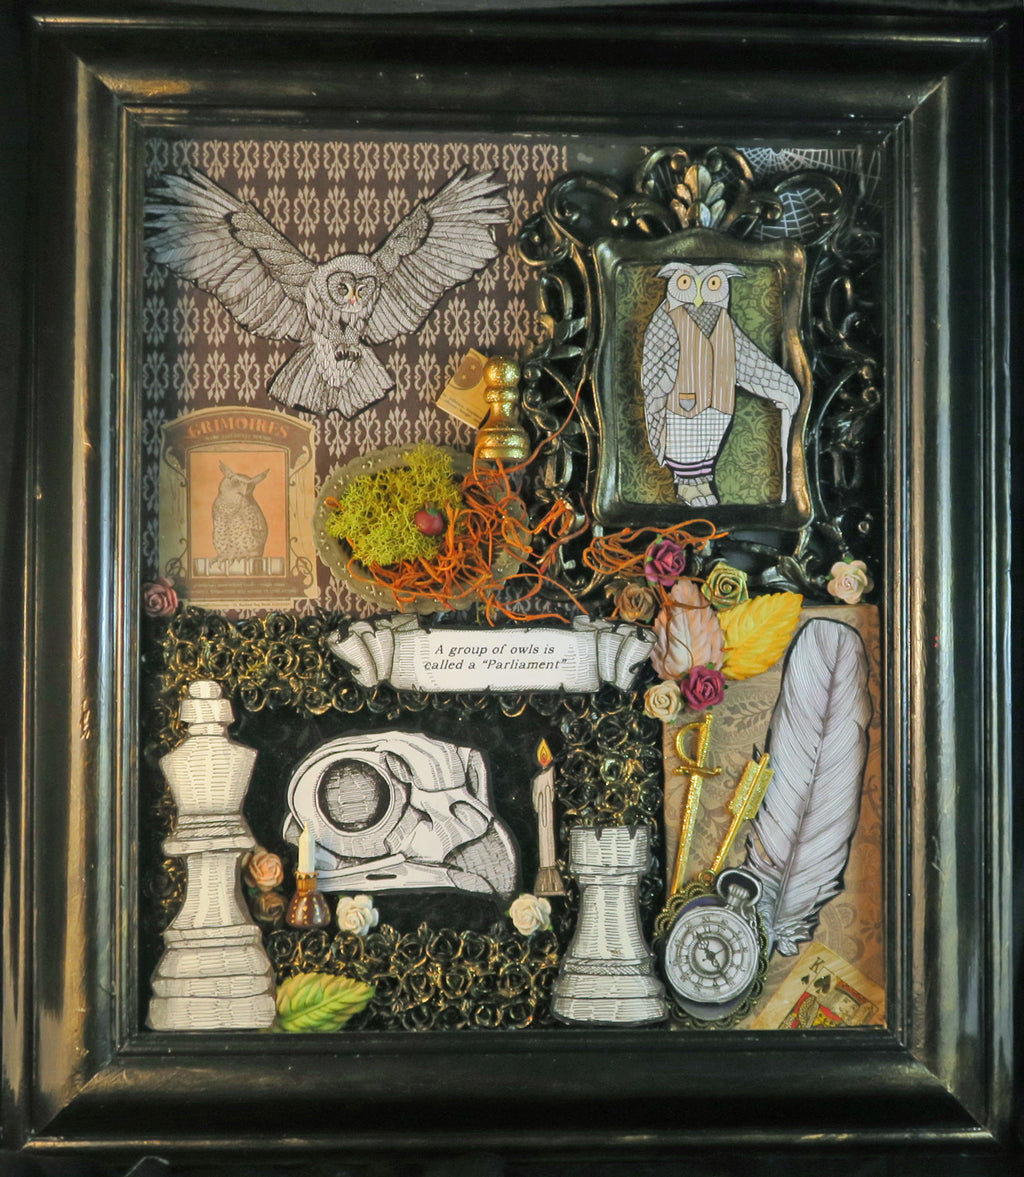 shadowbox art parliament of owls; owl in flight; owl skull assorted media